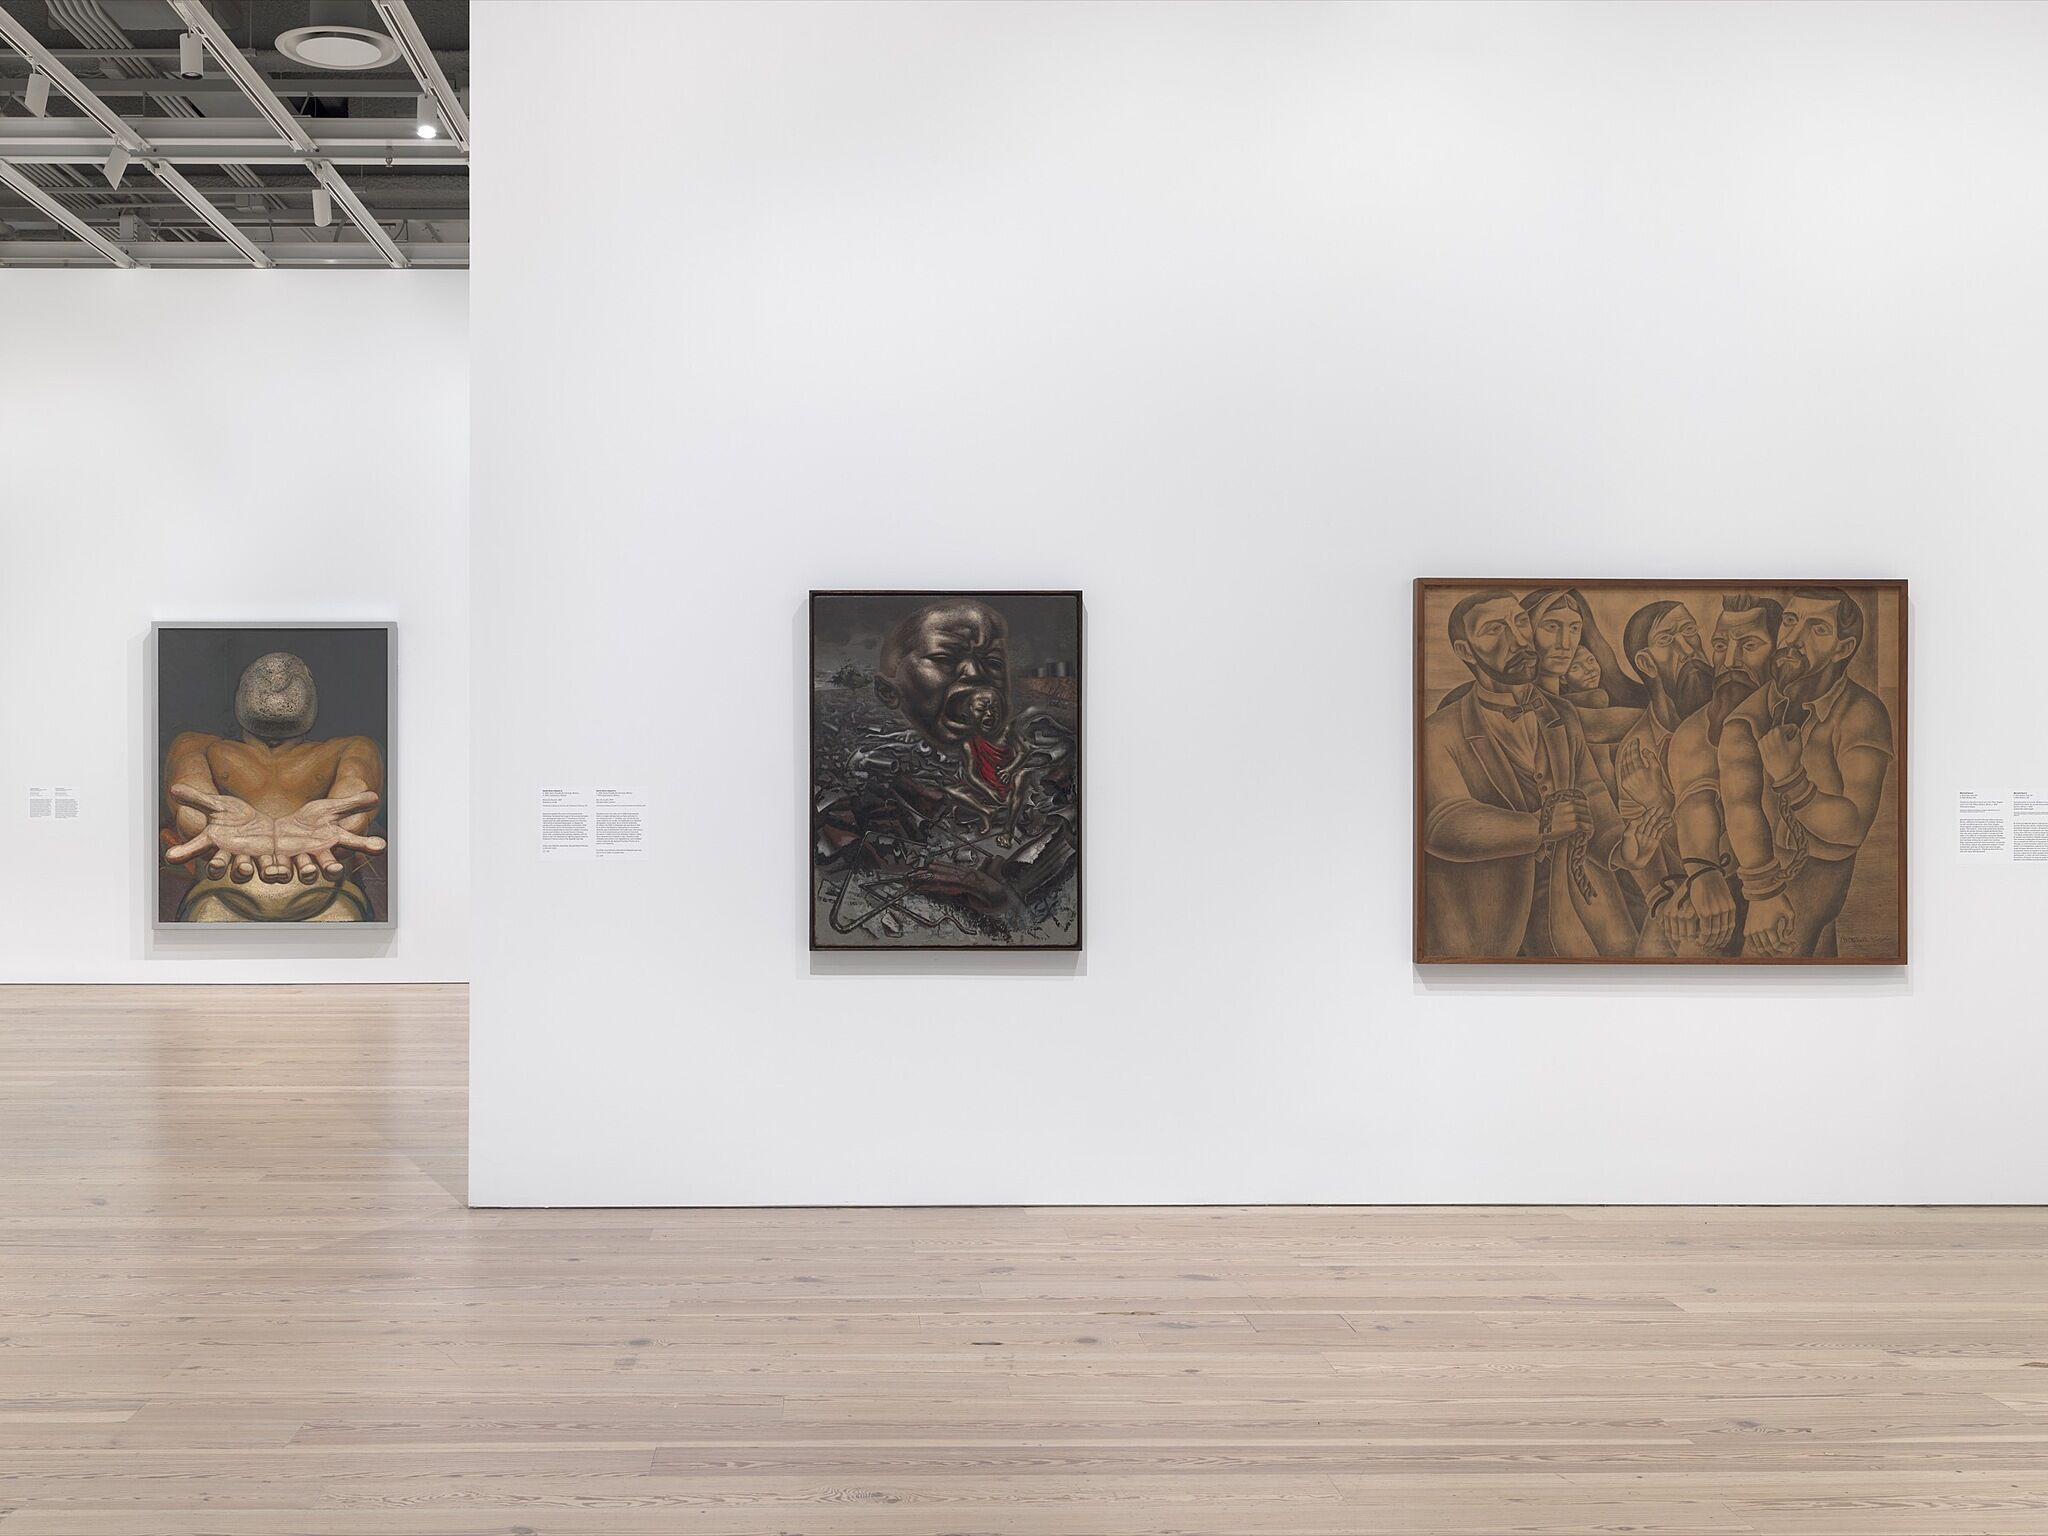 An installation photograph of a gallery with three paintings.